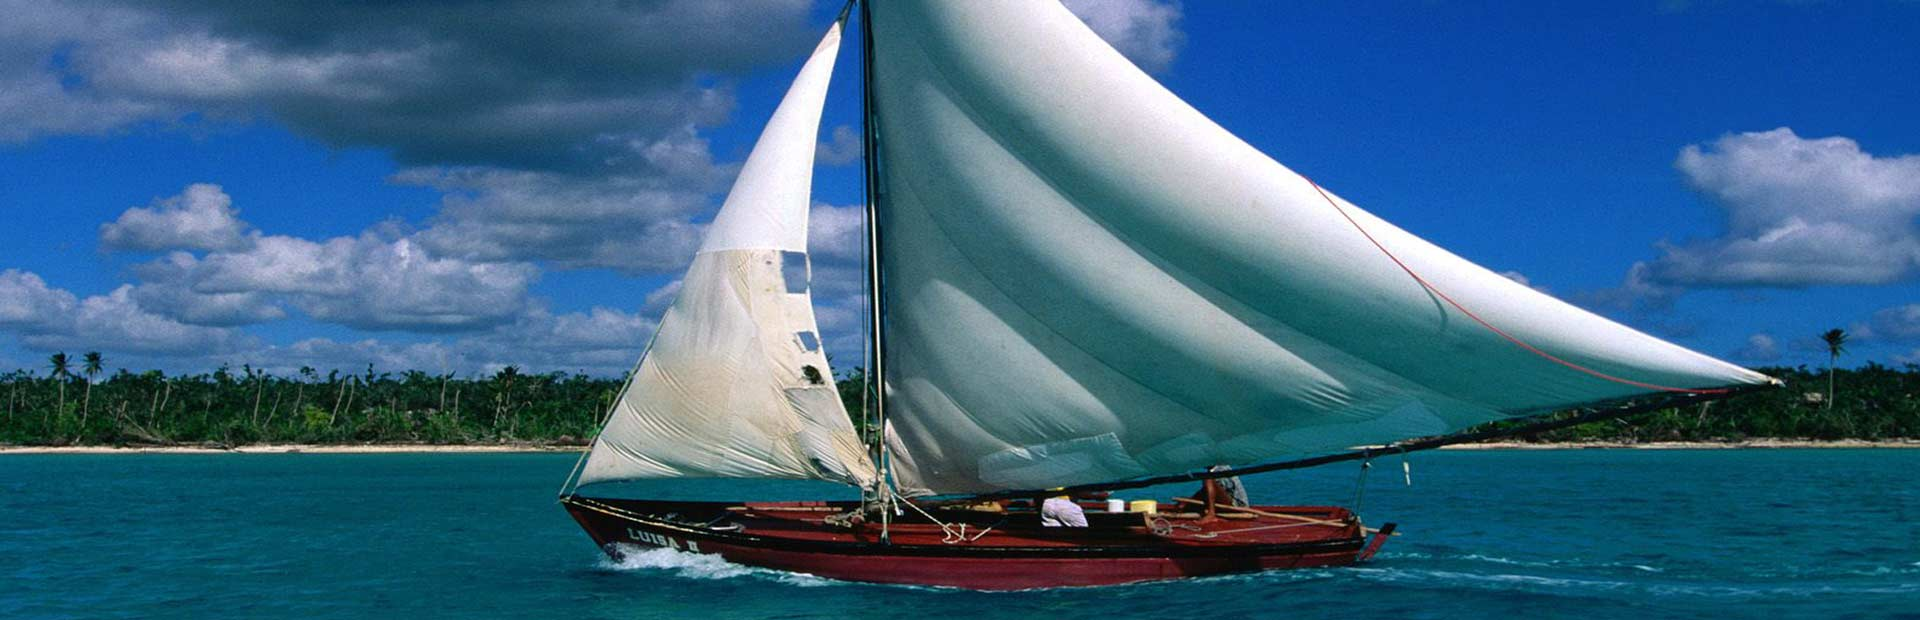 Beautiful wooden sailboat with sails catching the wind on shallow ocean waters by island shore.